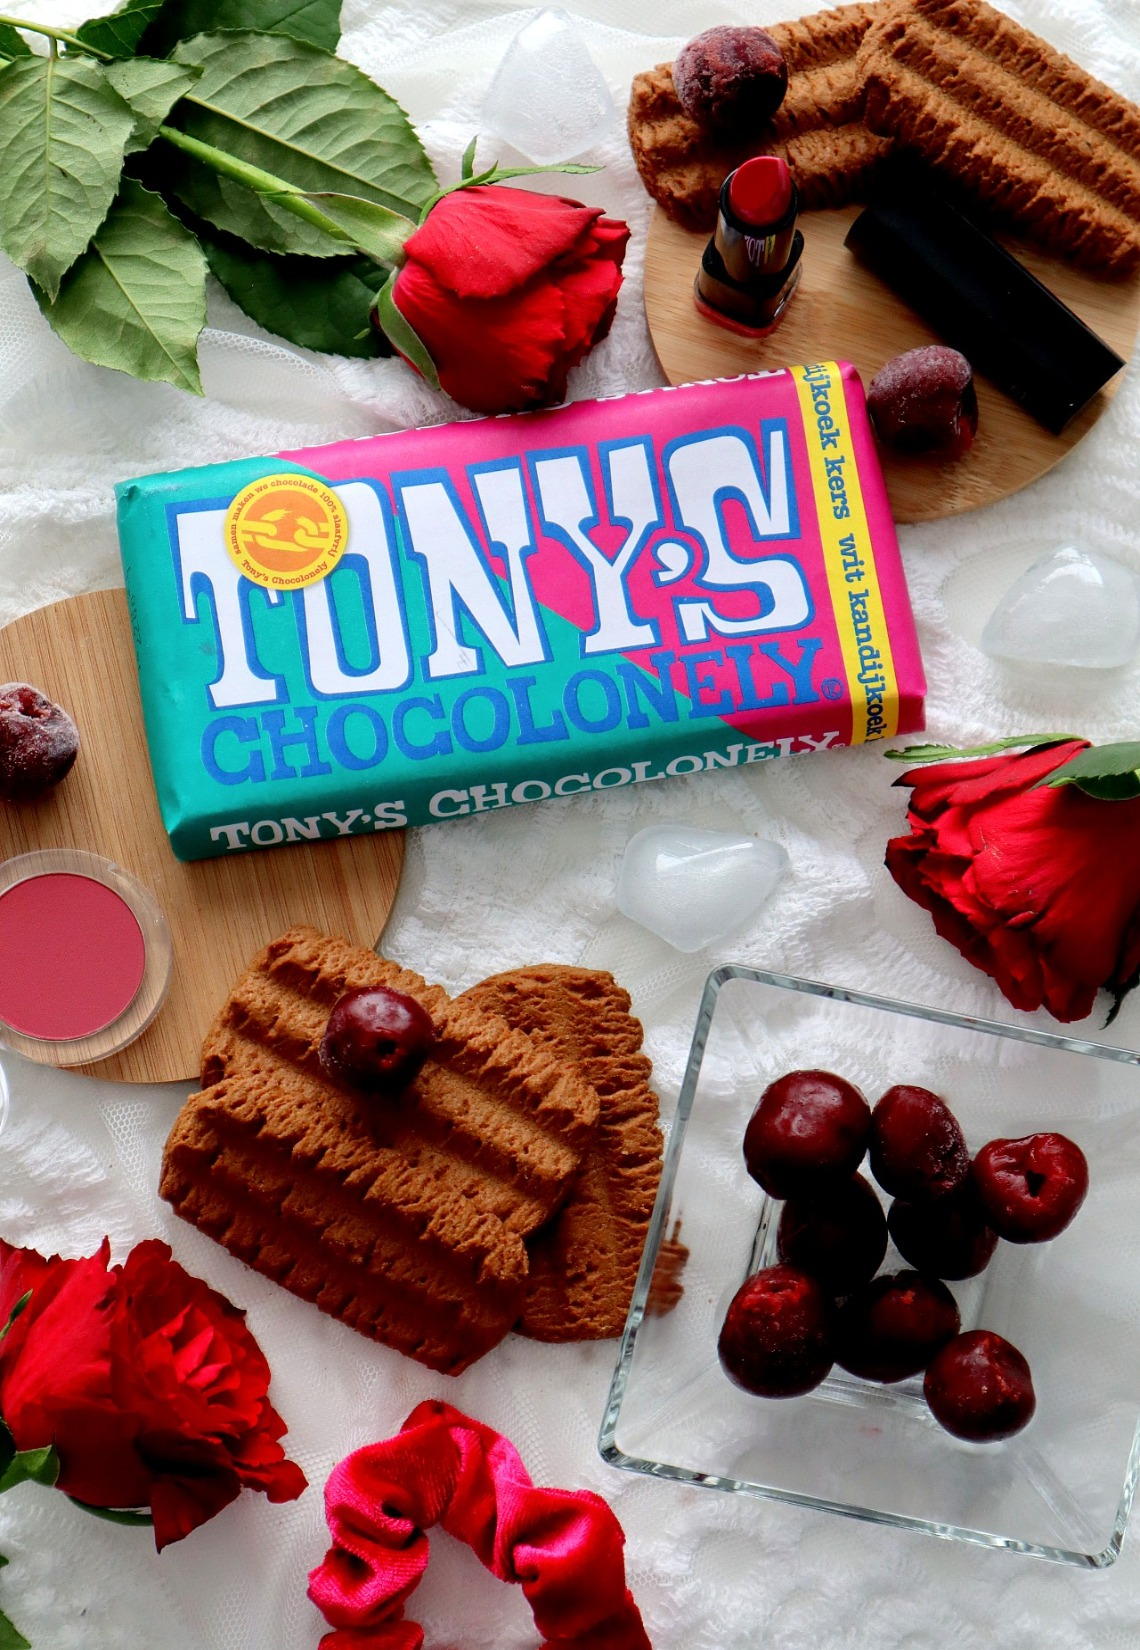 Tony's Chocolonely wit kandijkoek kers